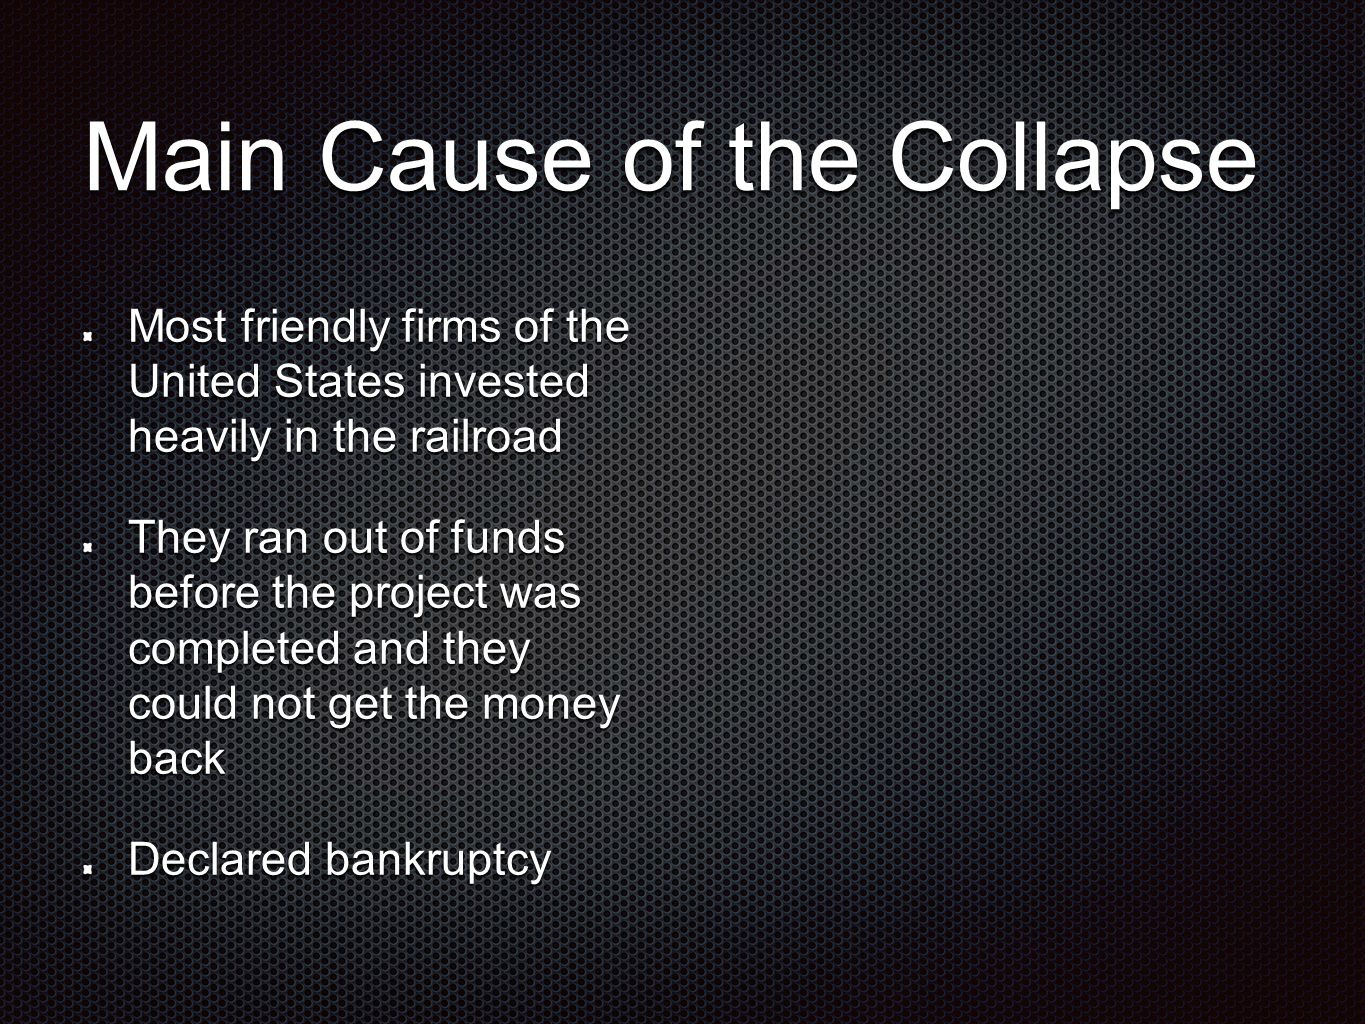 Main Cause of the Collapse Most friendly firms of the United States invested heavily in the railroad They ran out of funds before the project was completed and they could not get the money back Declared bankruptcy